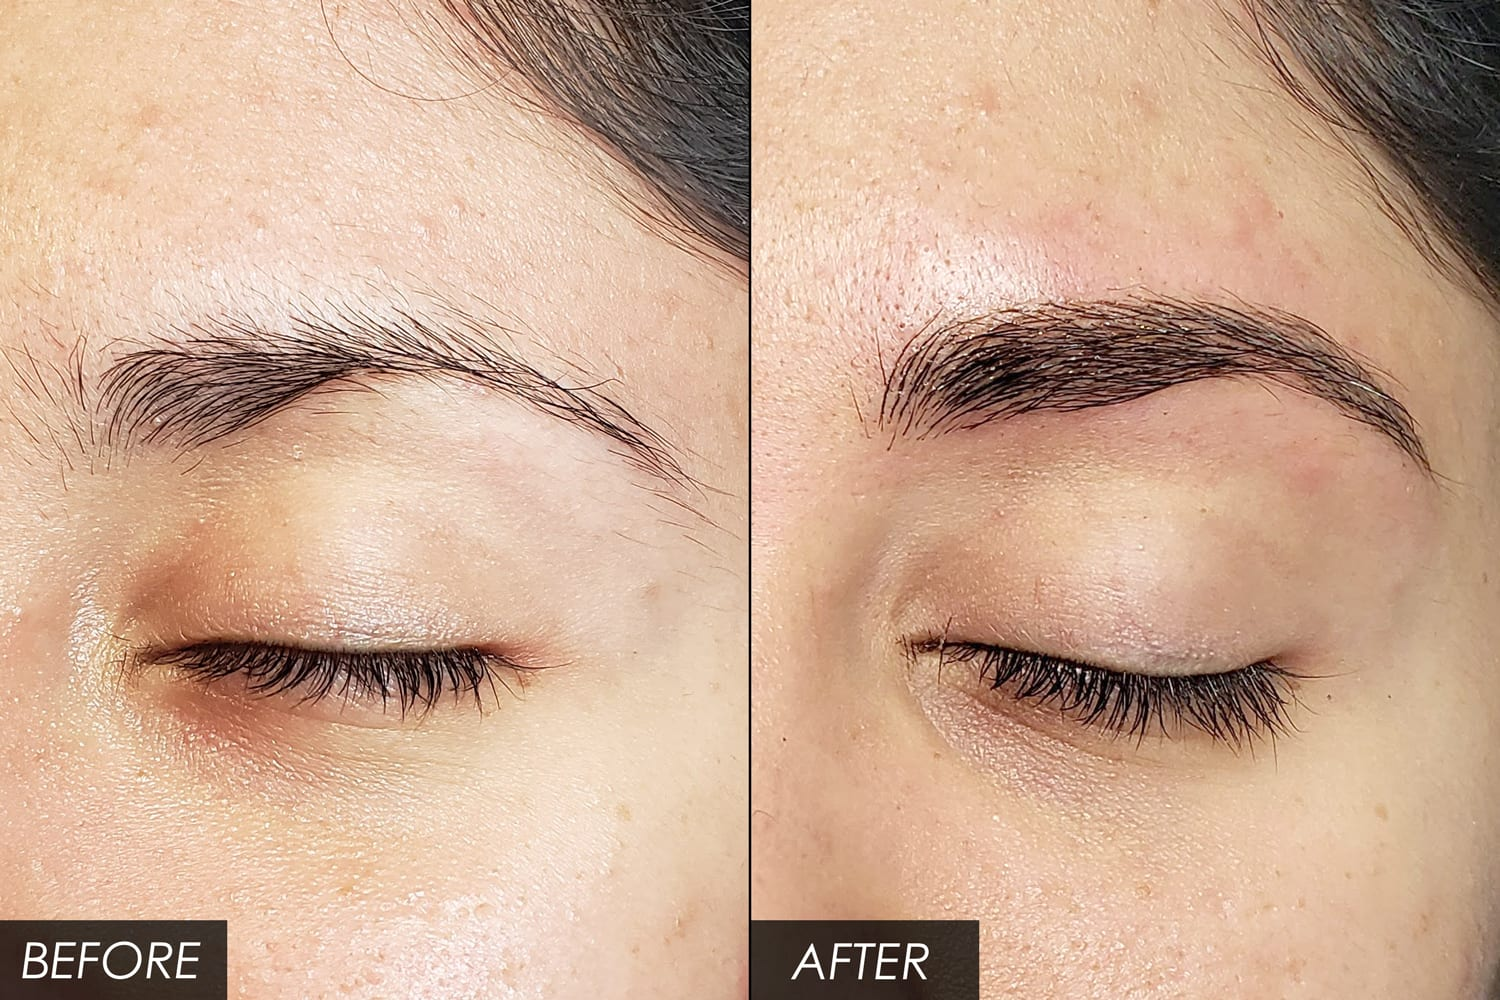 A closeup of a woman's eyebrows before and after a microblading session.